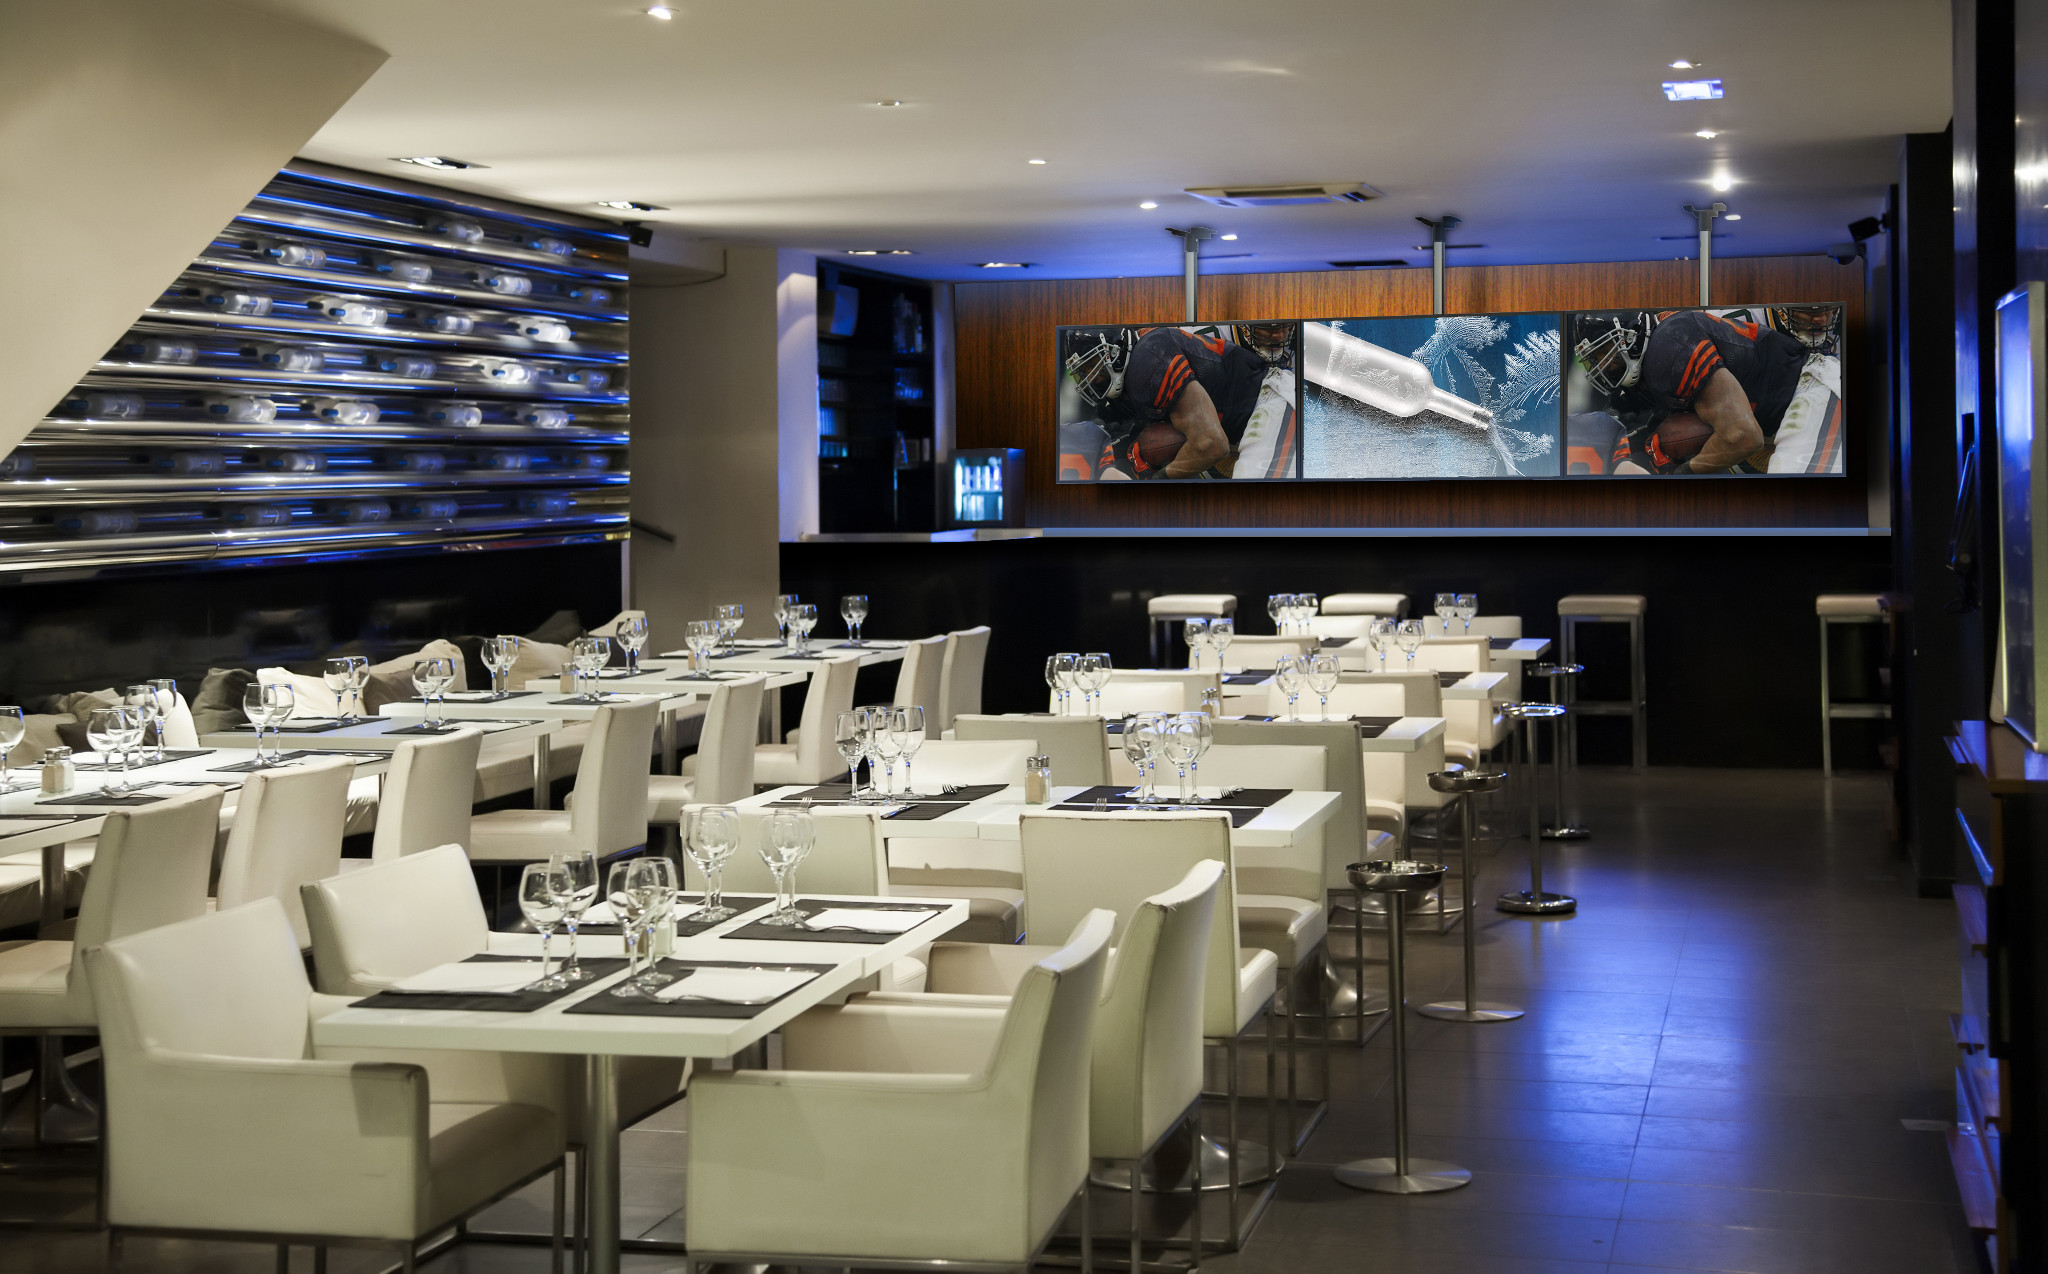 peerless-av_video-wall-restaurant-application-image